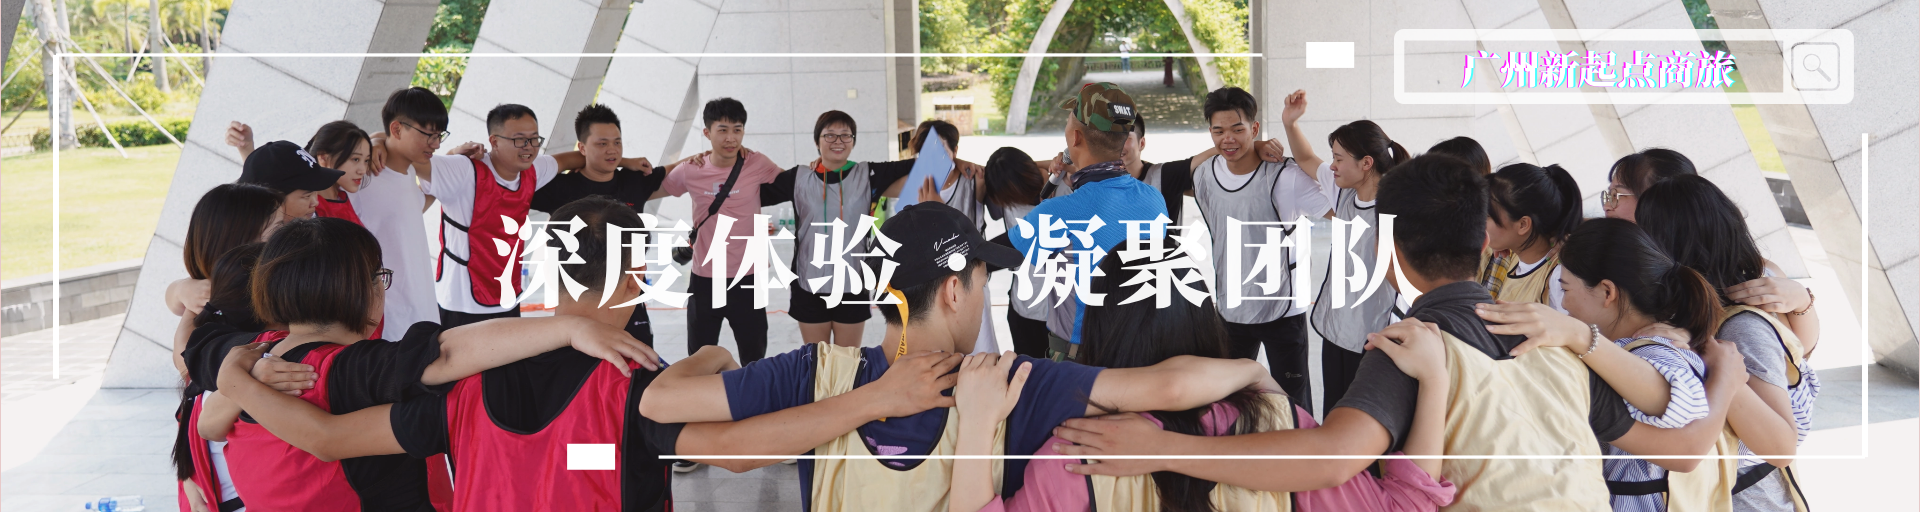 Focus on the outdoor training of Guangzhou, expand the team's cohesion for 10 years, expand the team's cohesion and expand the team's quality!